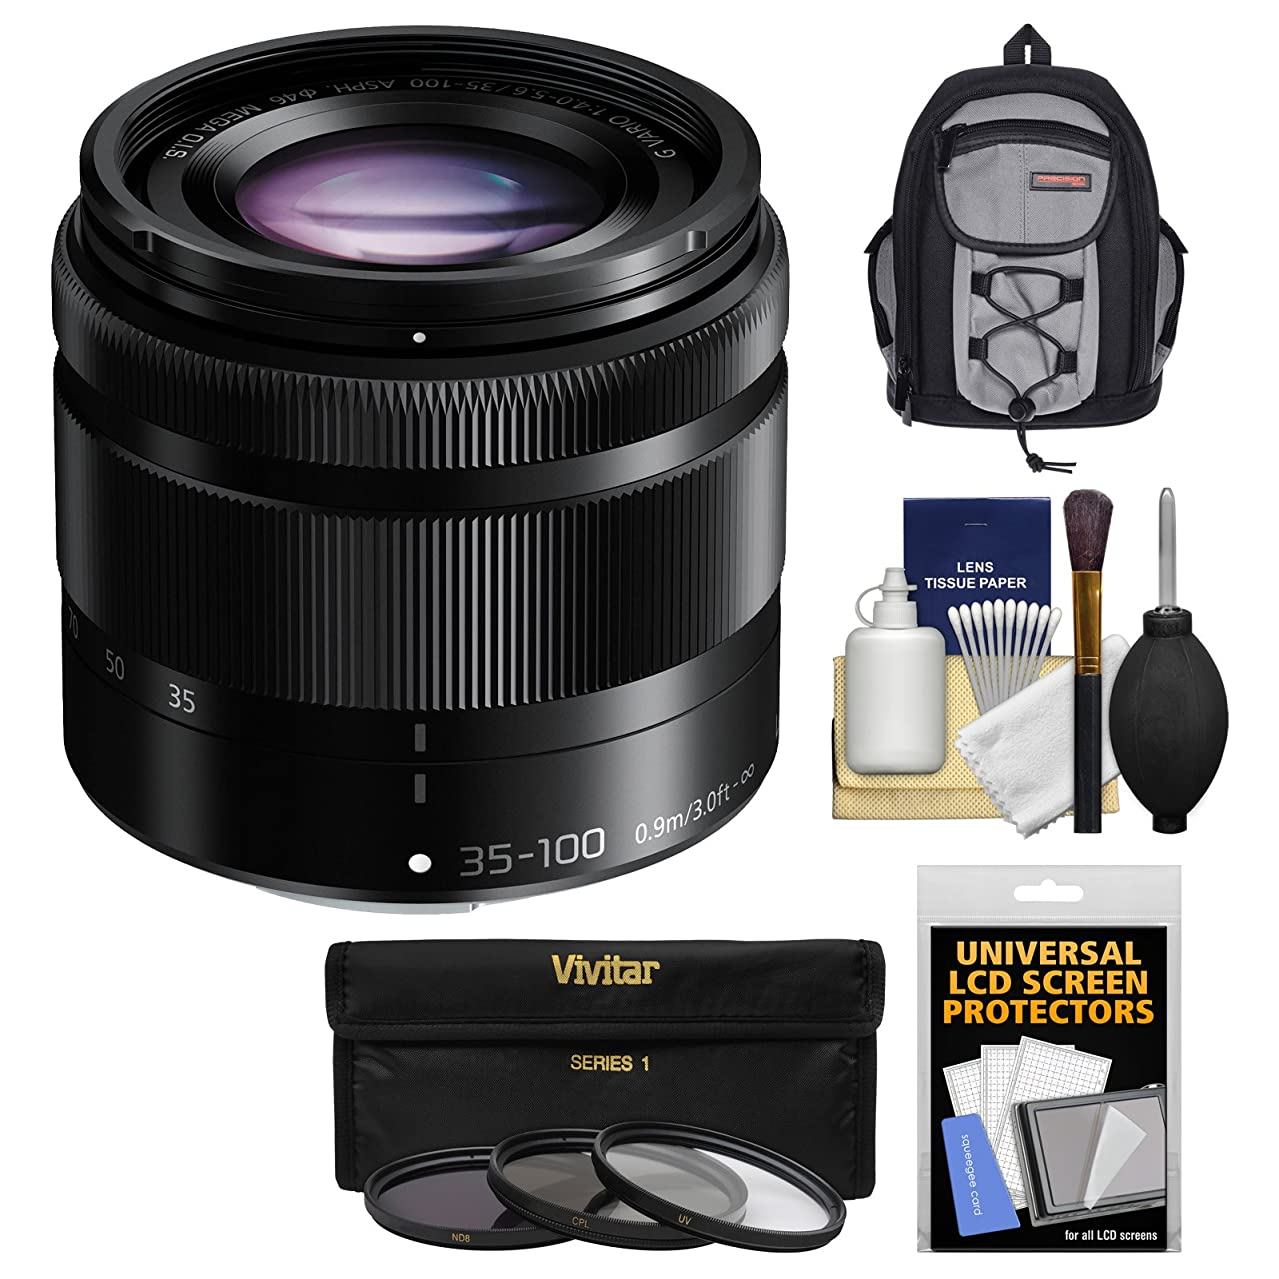 Panasonic Lumix G Vario 35-100mm f/4.0-5.6 OIS Zoom Lens with Case + 3 UV/CPL/ND8 Filters Kit for G6, GF6, GF7, GH3, GH4, GM1, GM5, GX7 Cameras